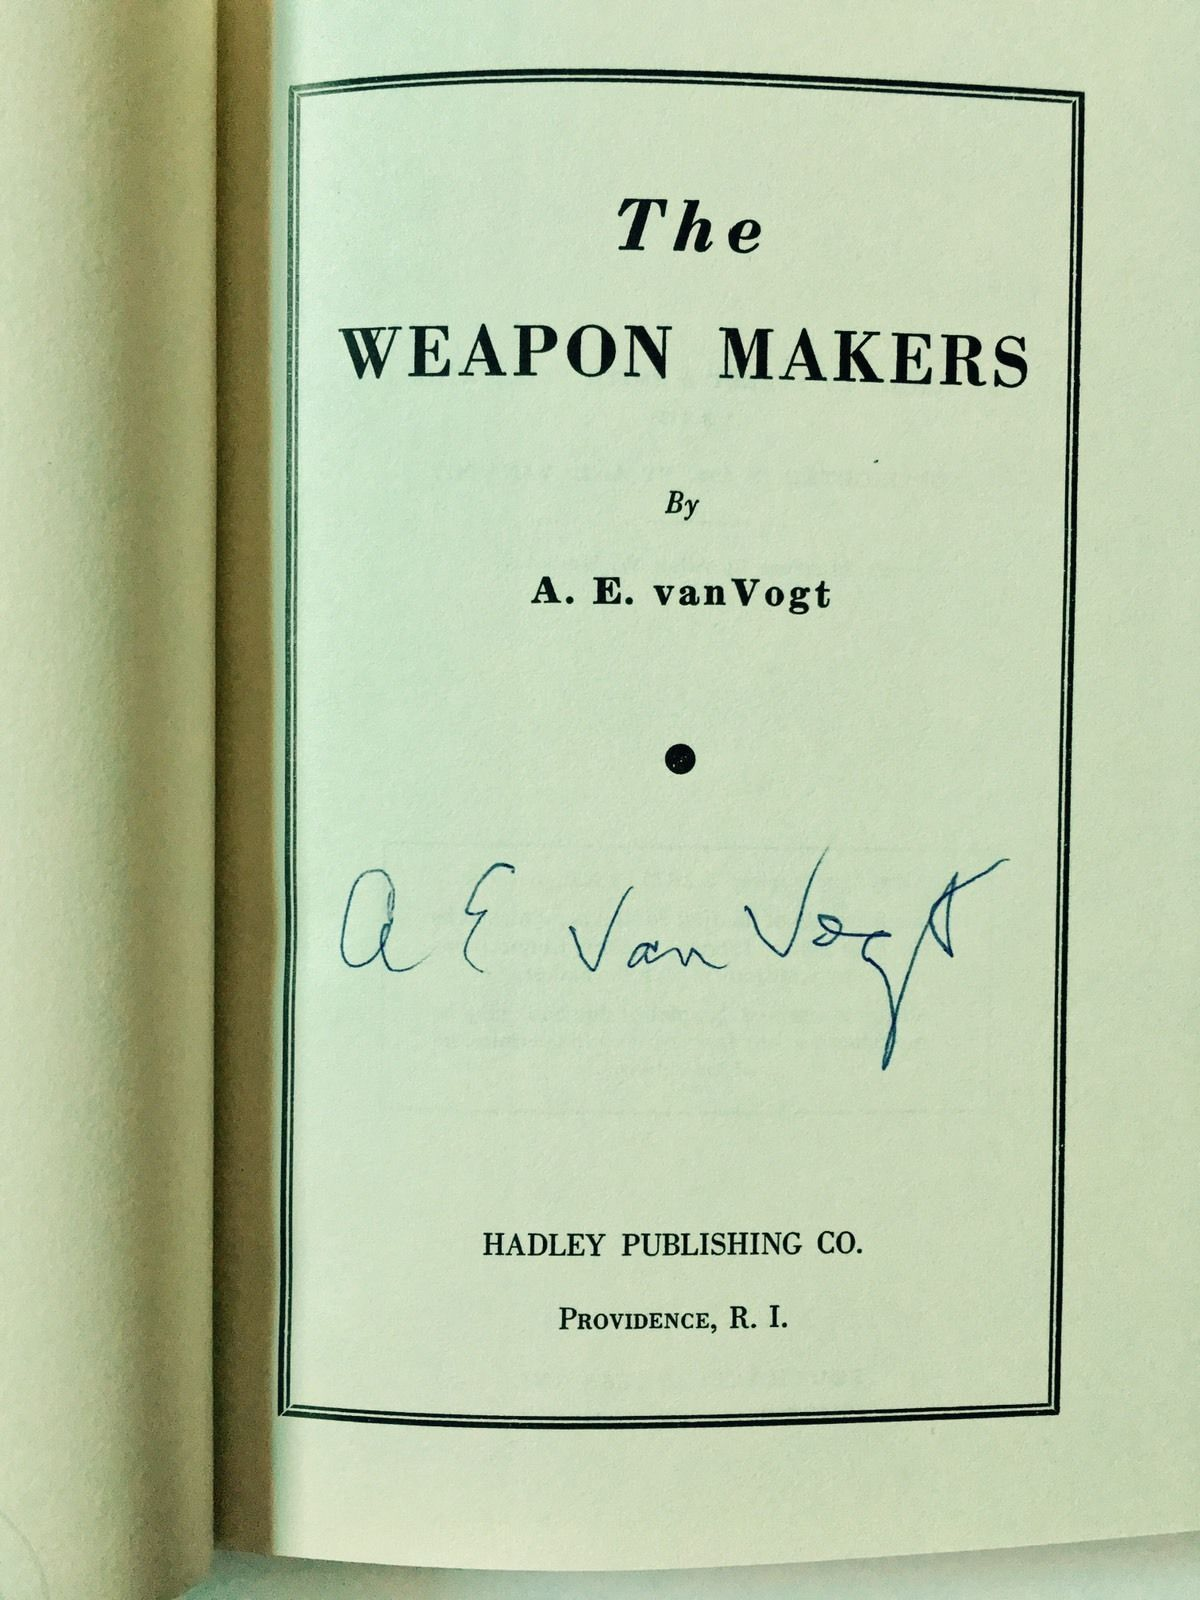 The Weapons Makers/ van Vogt Signed Mint